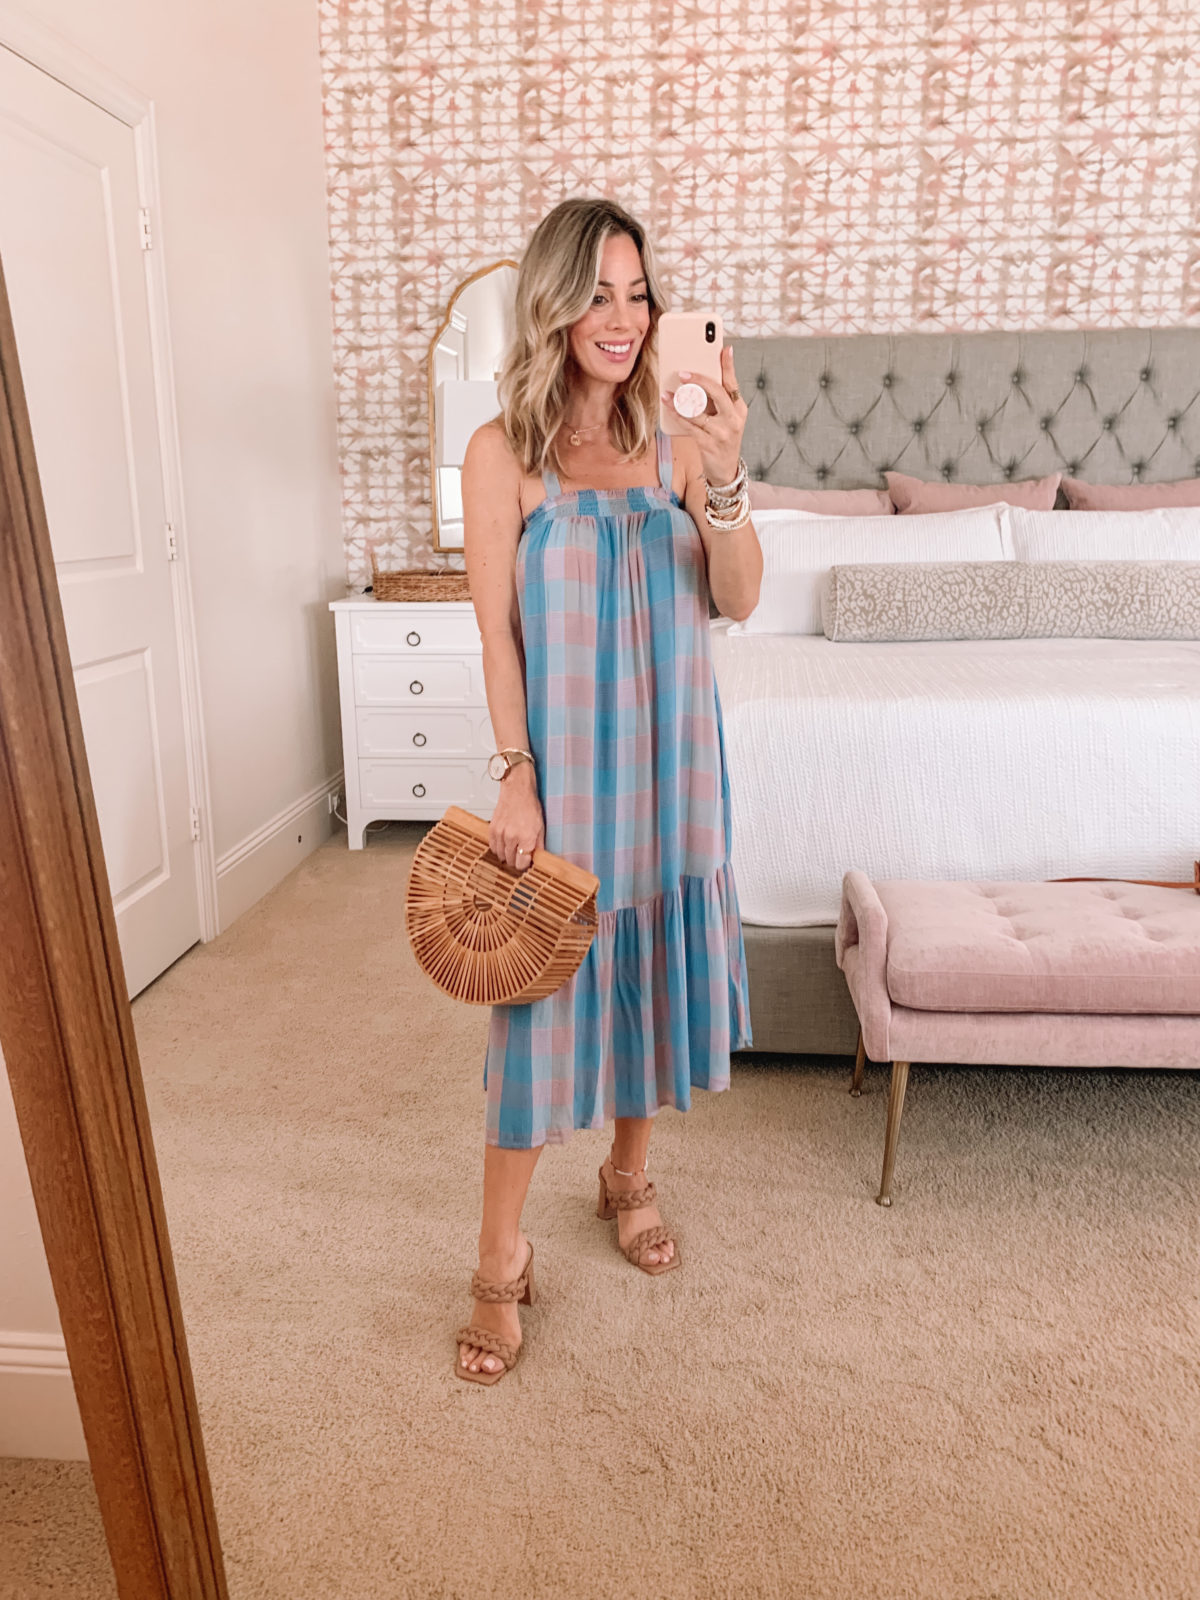 Dressing Room Finds, Gingham Dress and Sandals with Bamboo Clutch